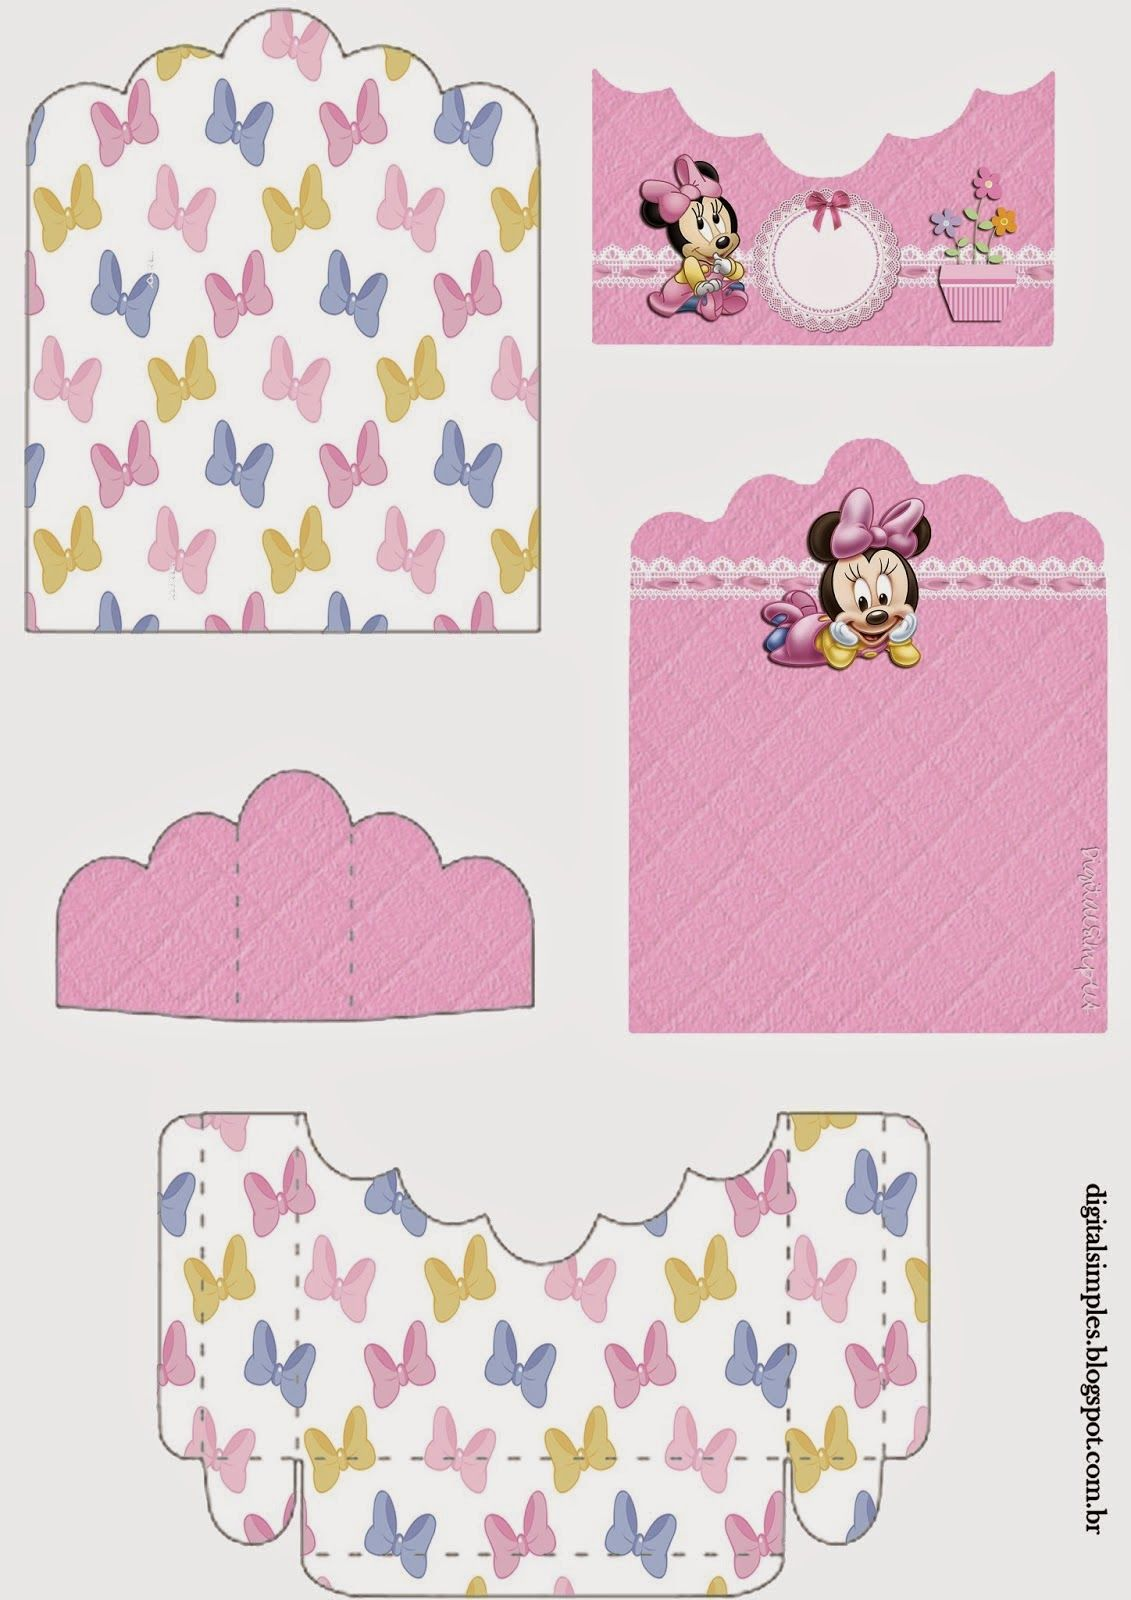 Baby minnie support for treats for free print bebes pinterest minnie beb imprimir - Candy diva futura ...